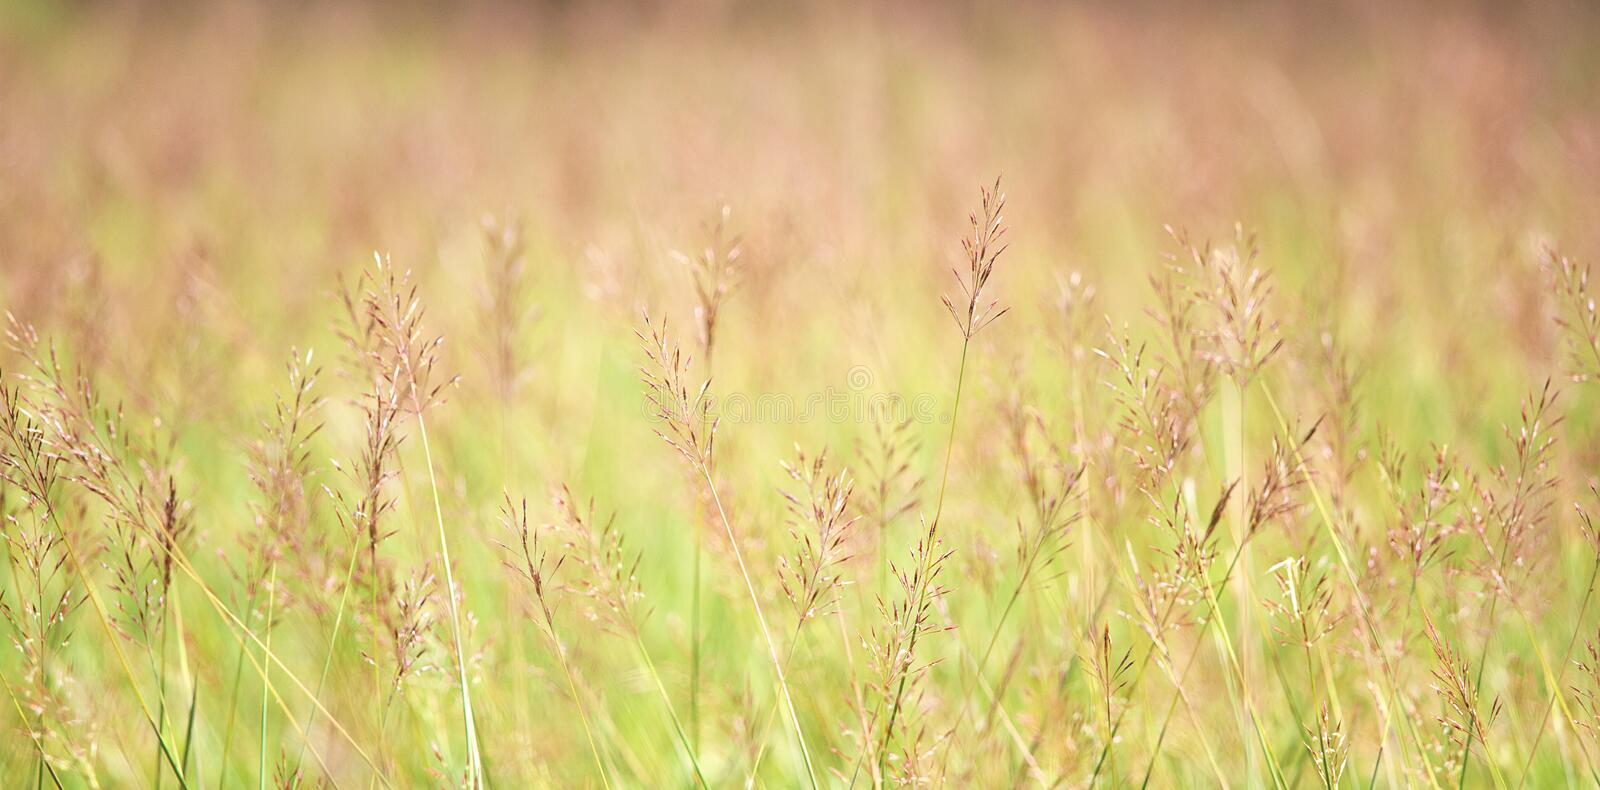 Spring or summer abstract nature background royalty free stock photos